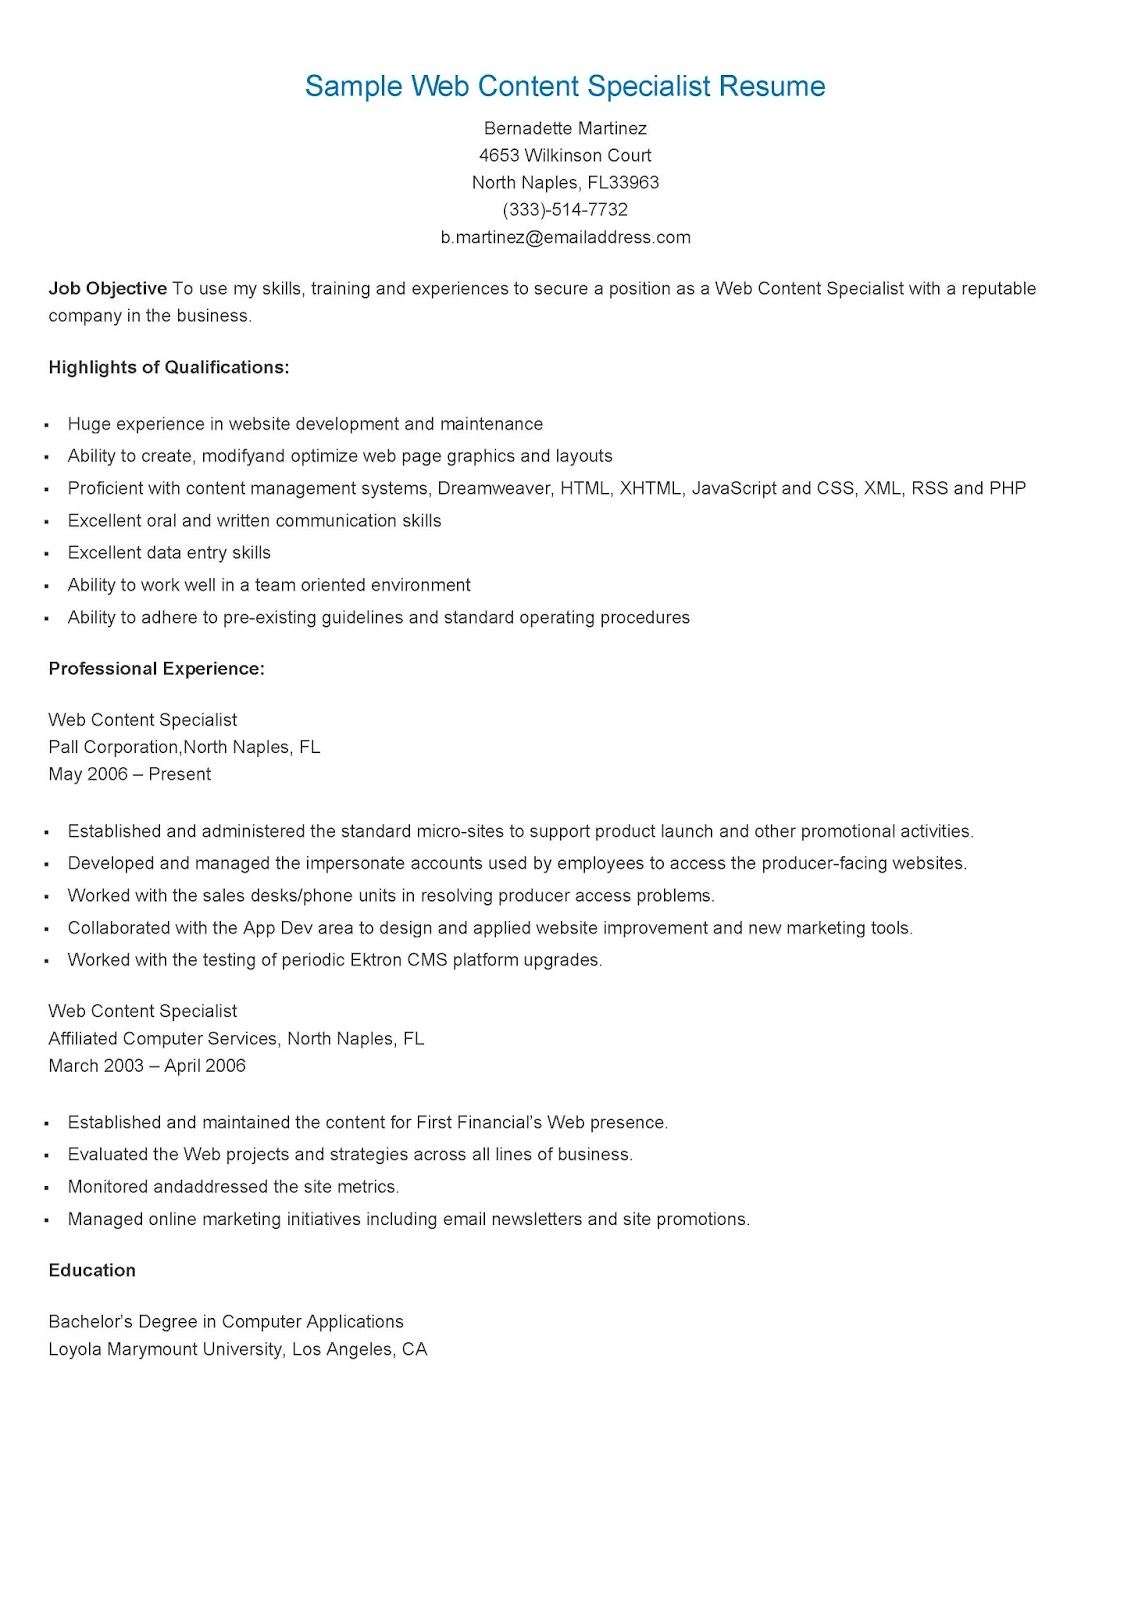 Resume Samples Sample Web Content Specialist Resume